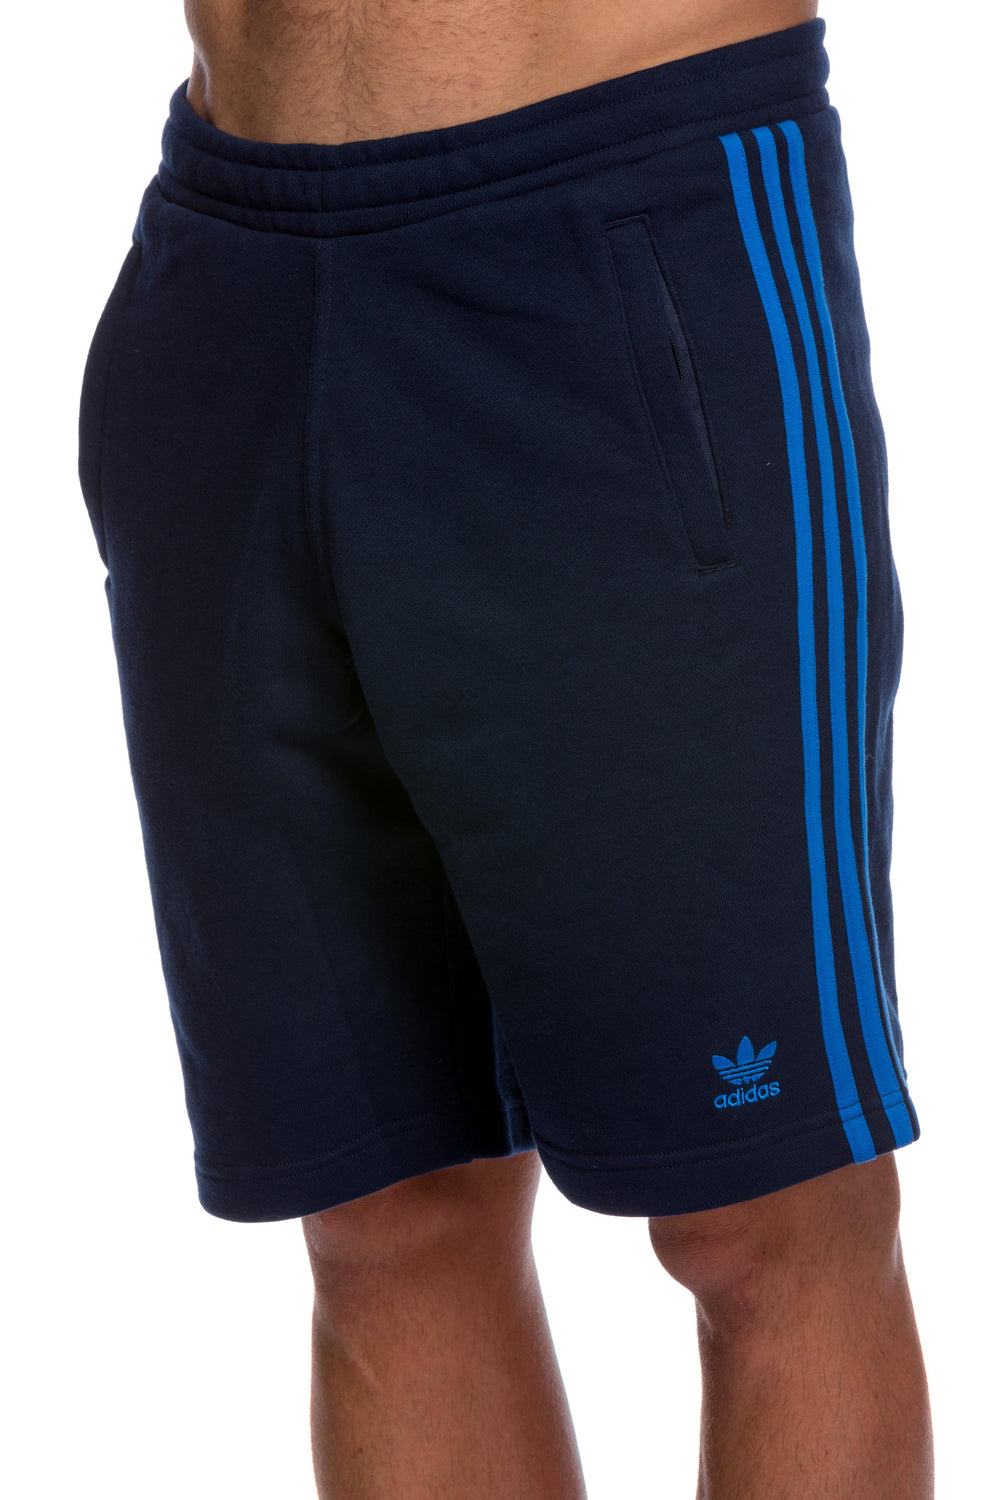 Short 3-Stripes Adidas